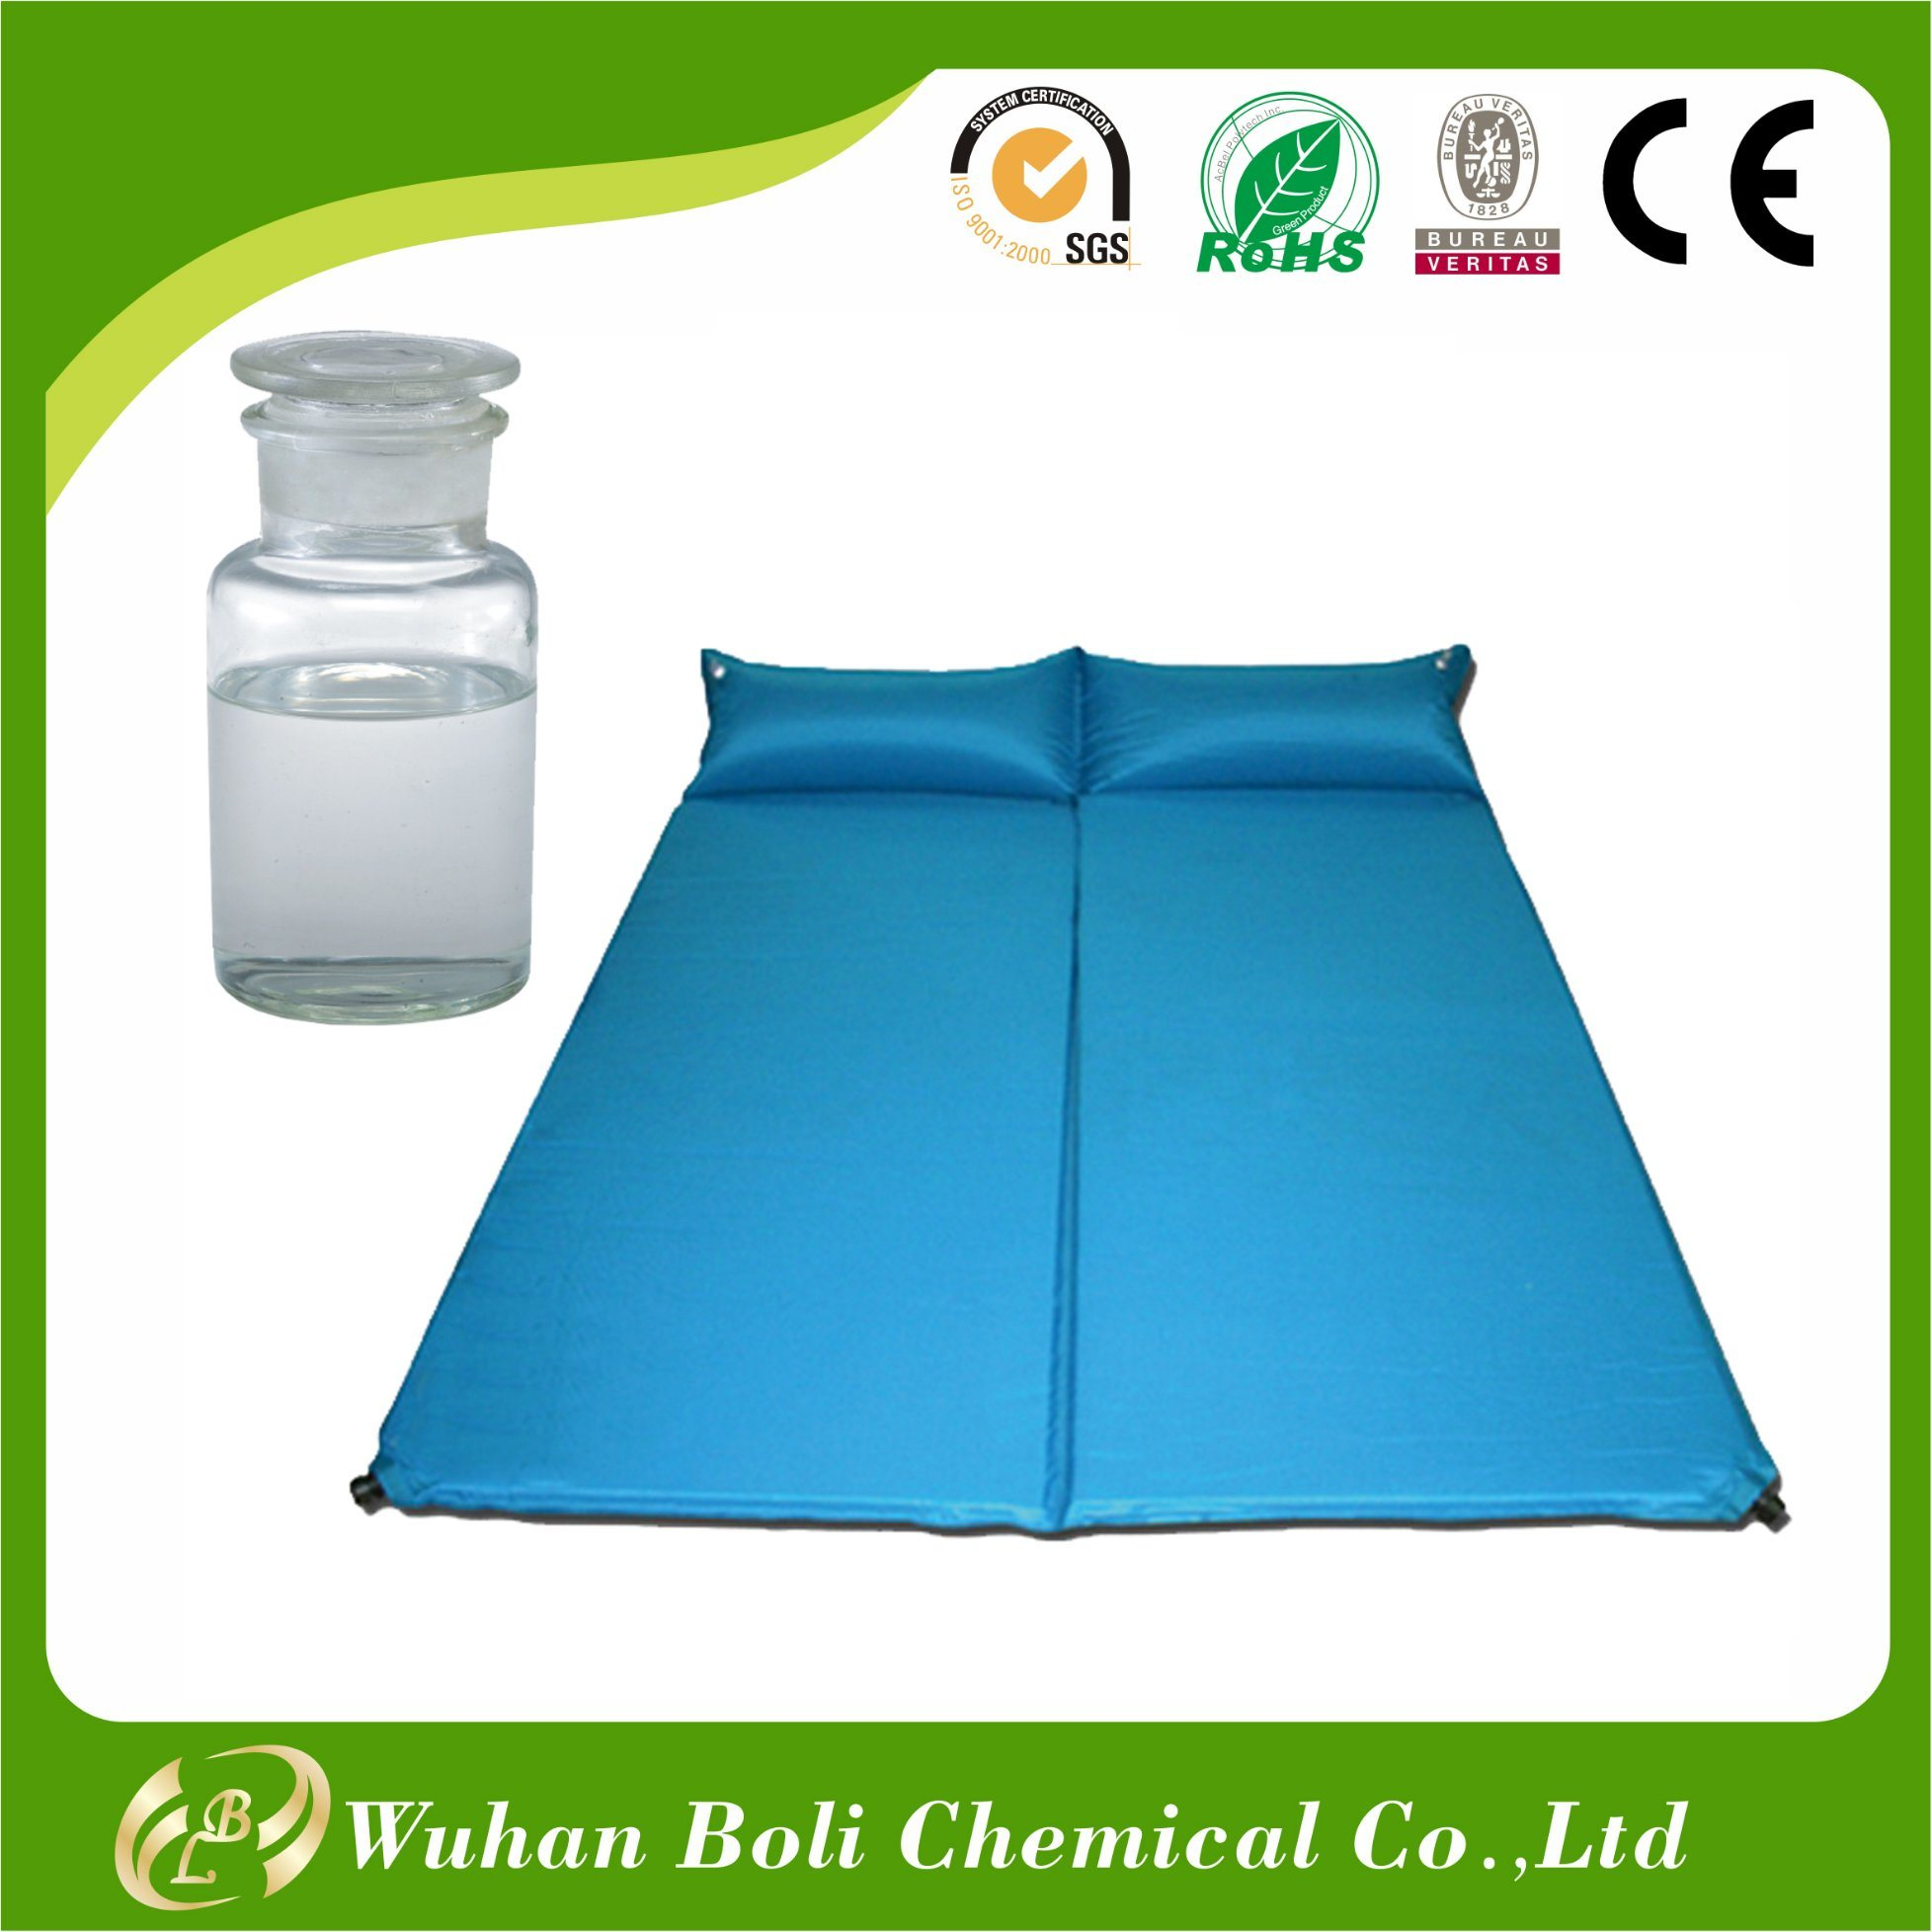 Outdoor Camping Bed Pad Air Inflatable Sleeping Mattress Polyurethane Glue